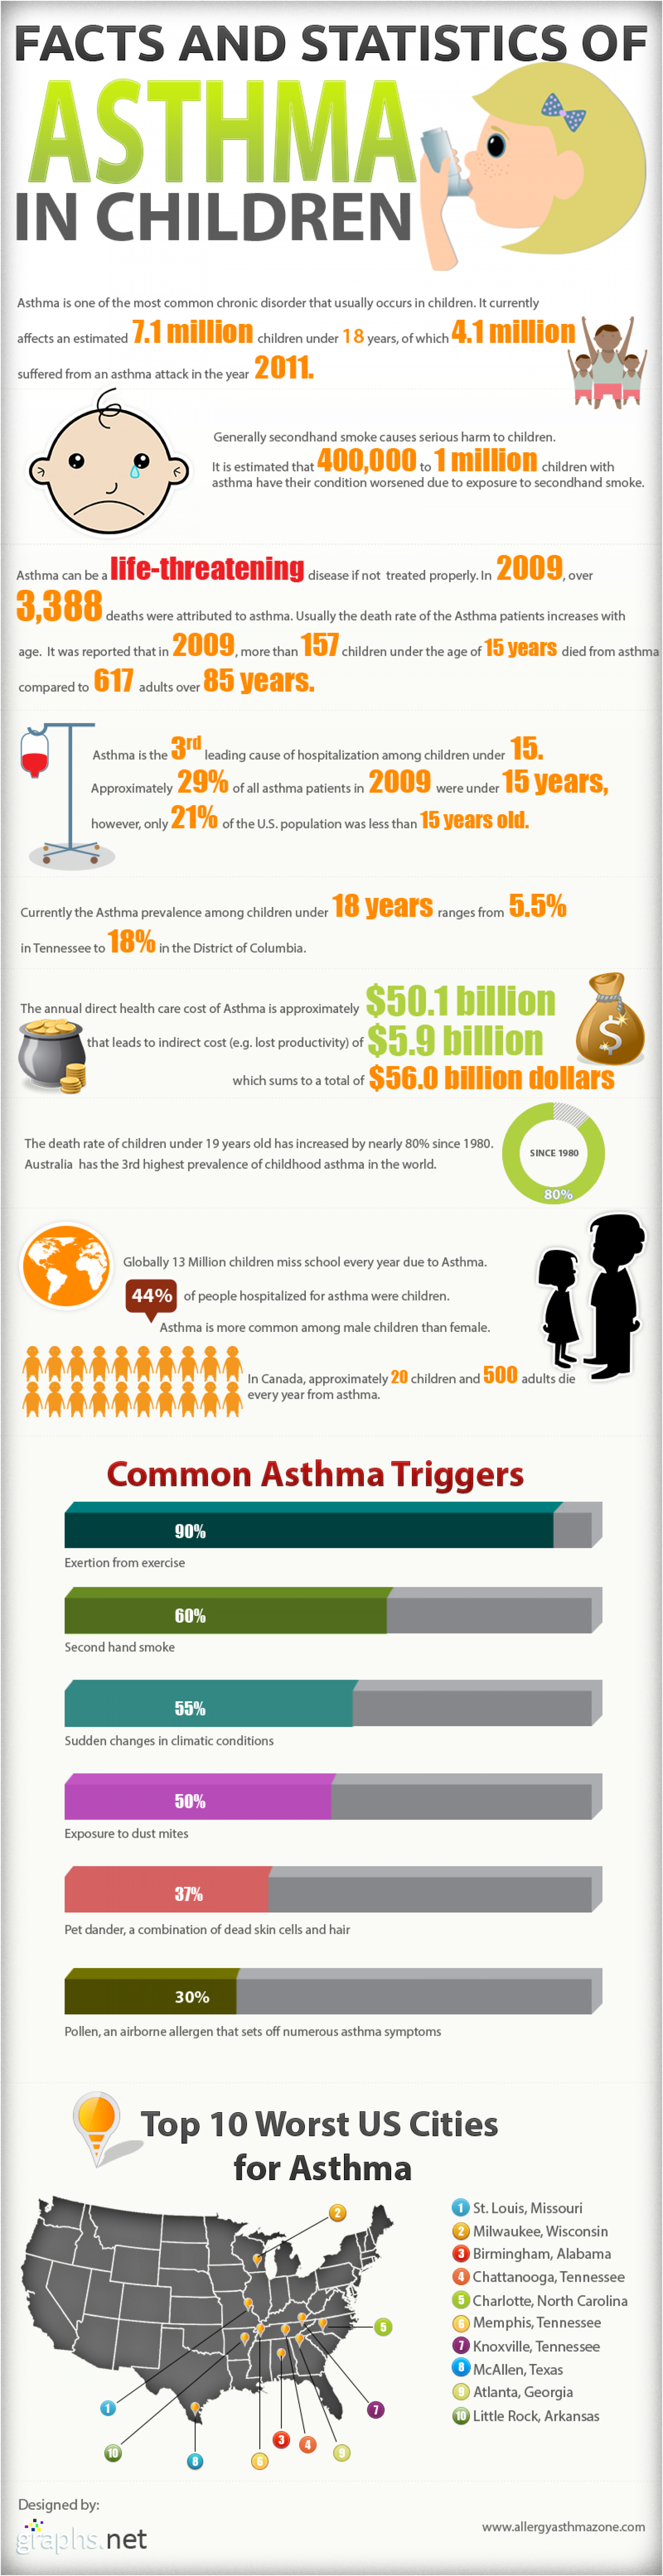 Facts and Statistics of Asthma in Children (Infographic)  Infographic